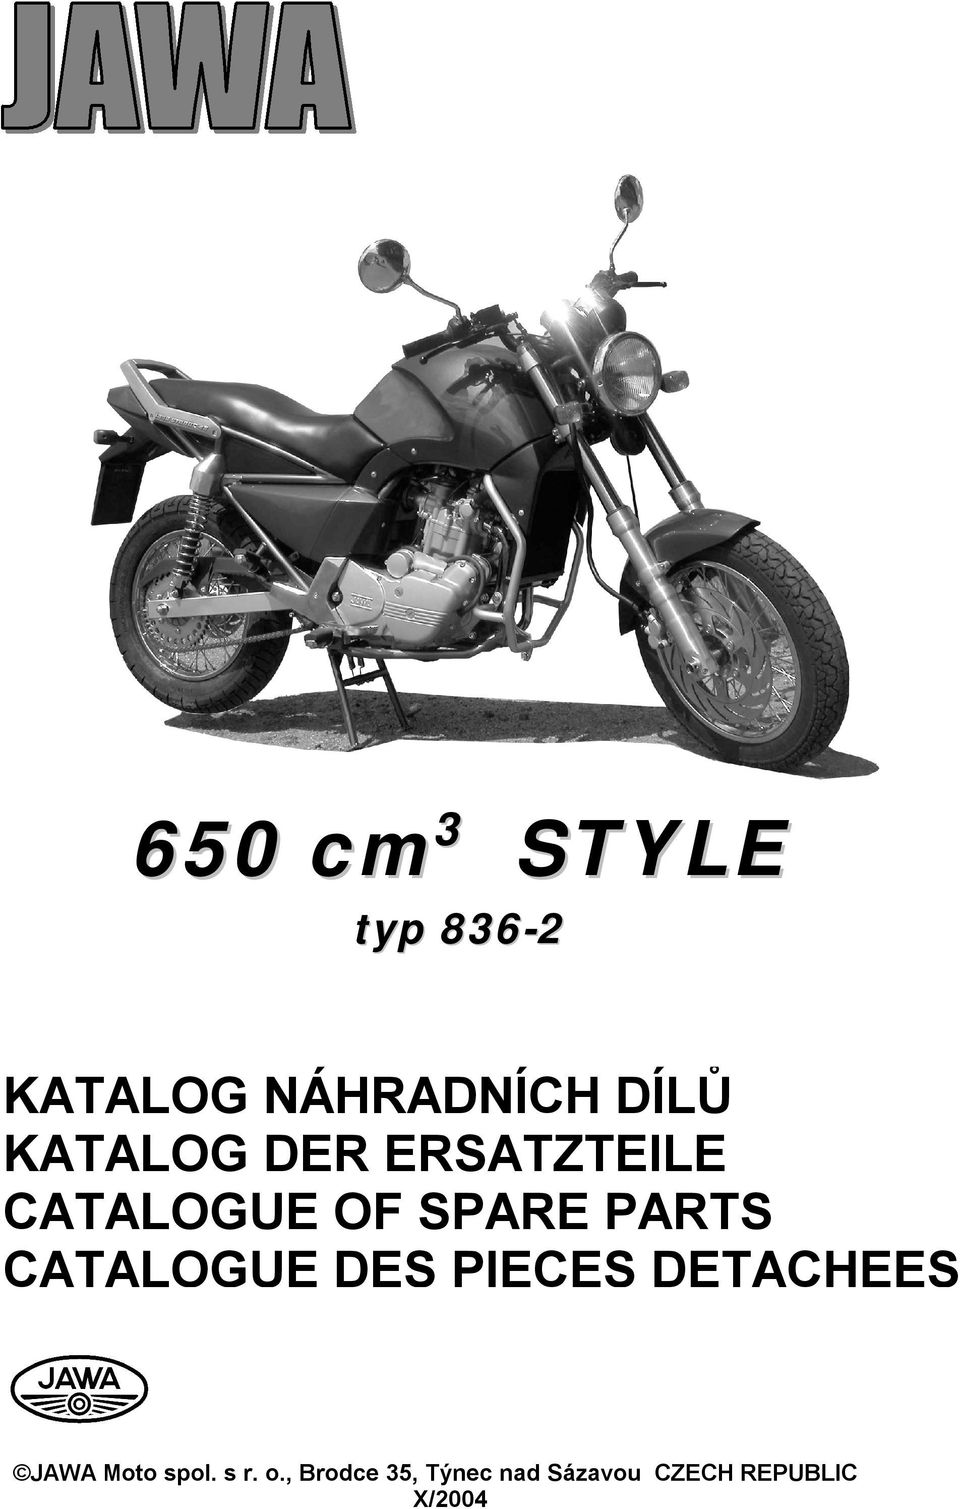 CATALOGUE DES PIECES DETACHEES JAWA Moto spol.